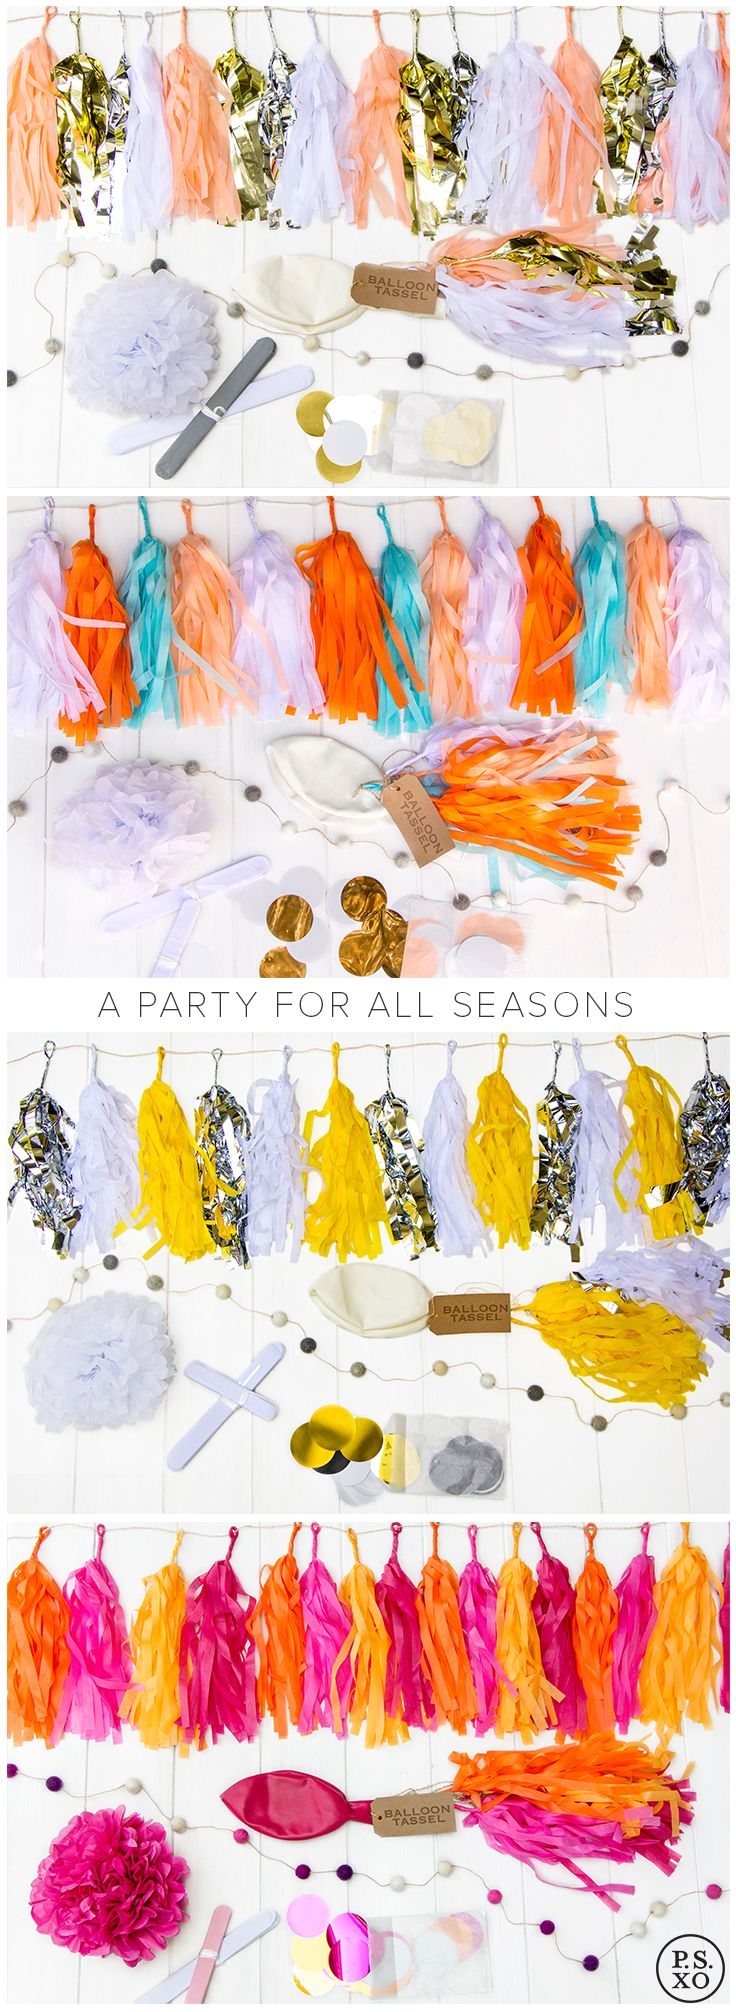 Whatever the season, whatever the occasion, P.S. XO has got you covered! Beautiful party decorations delivered right to your door, so you can stress less and party more!